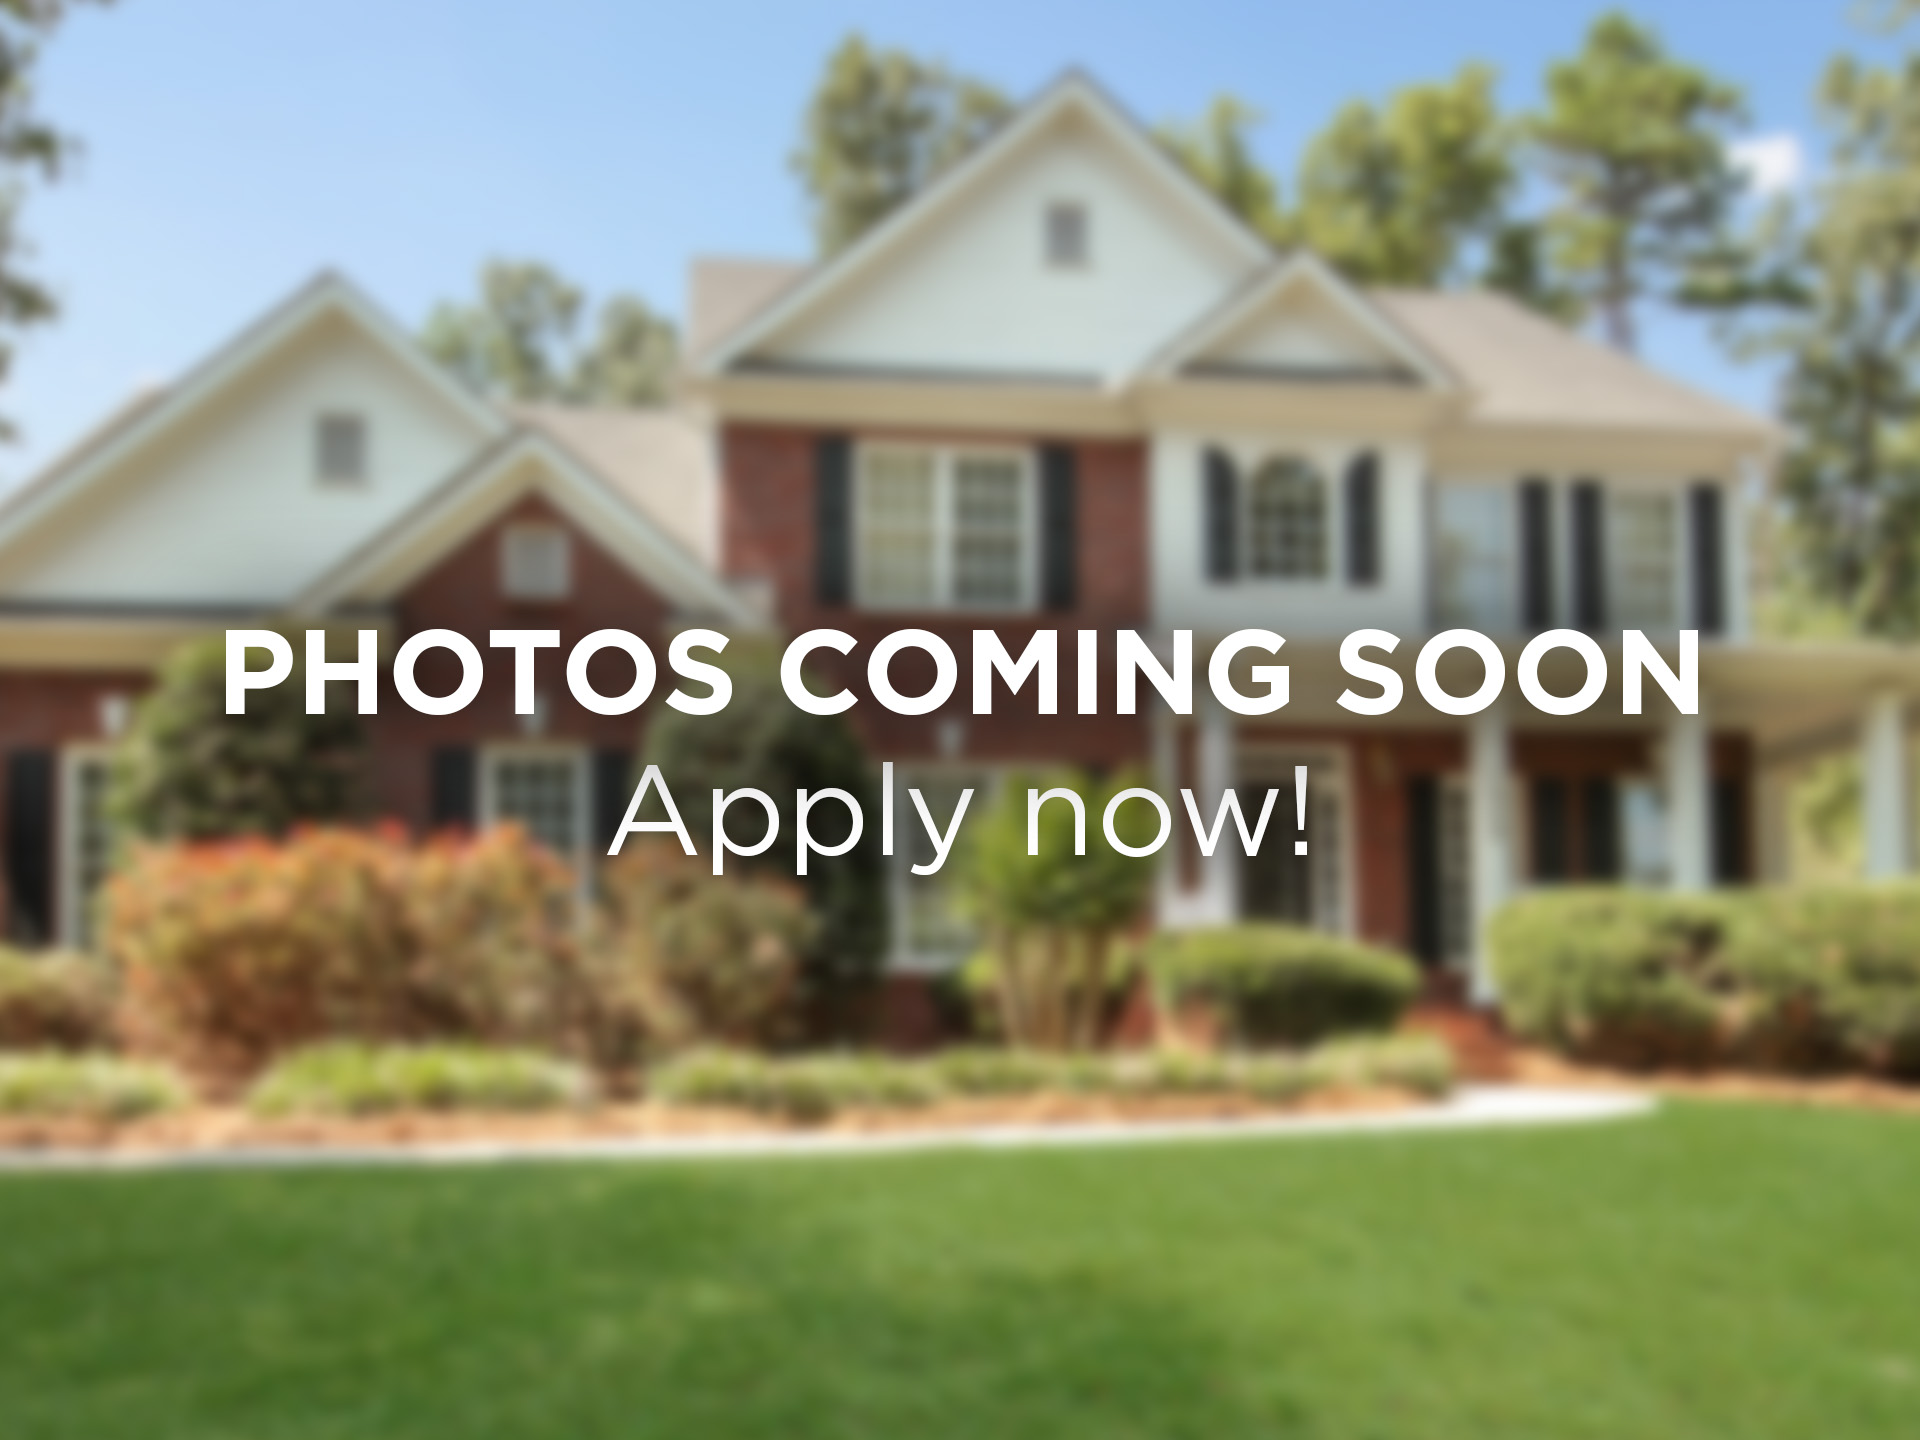 Single Family Houses for Rent in Los Angeles and Inland Empire CA